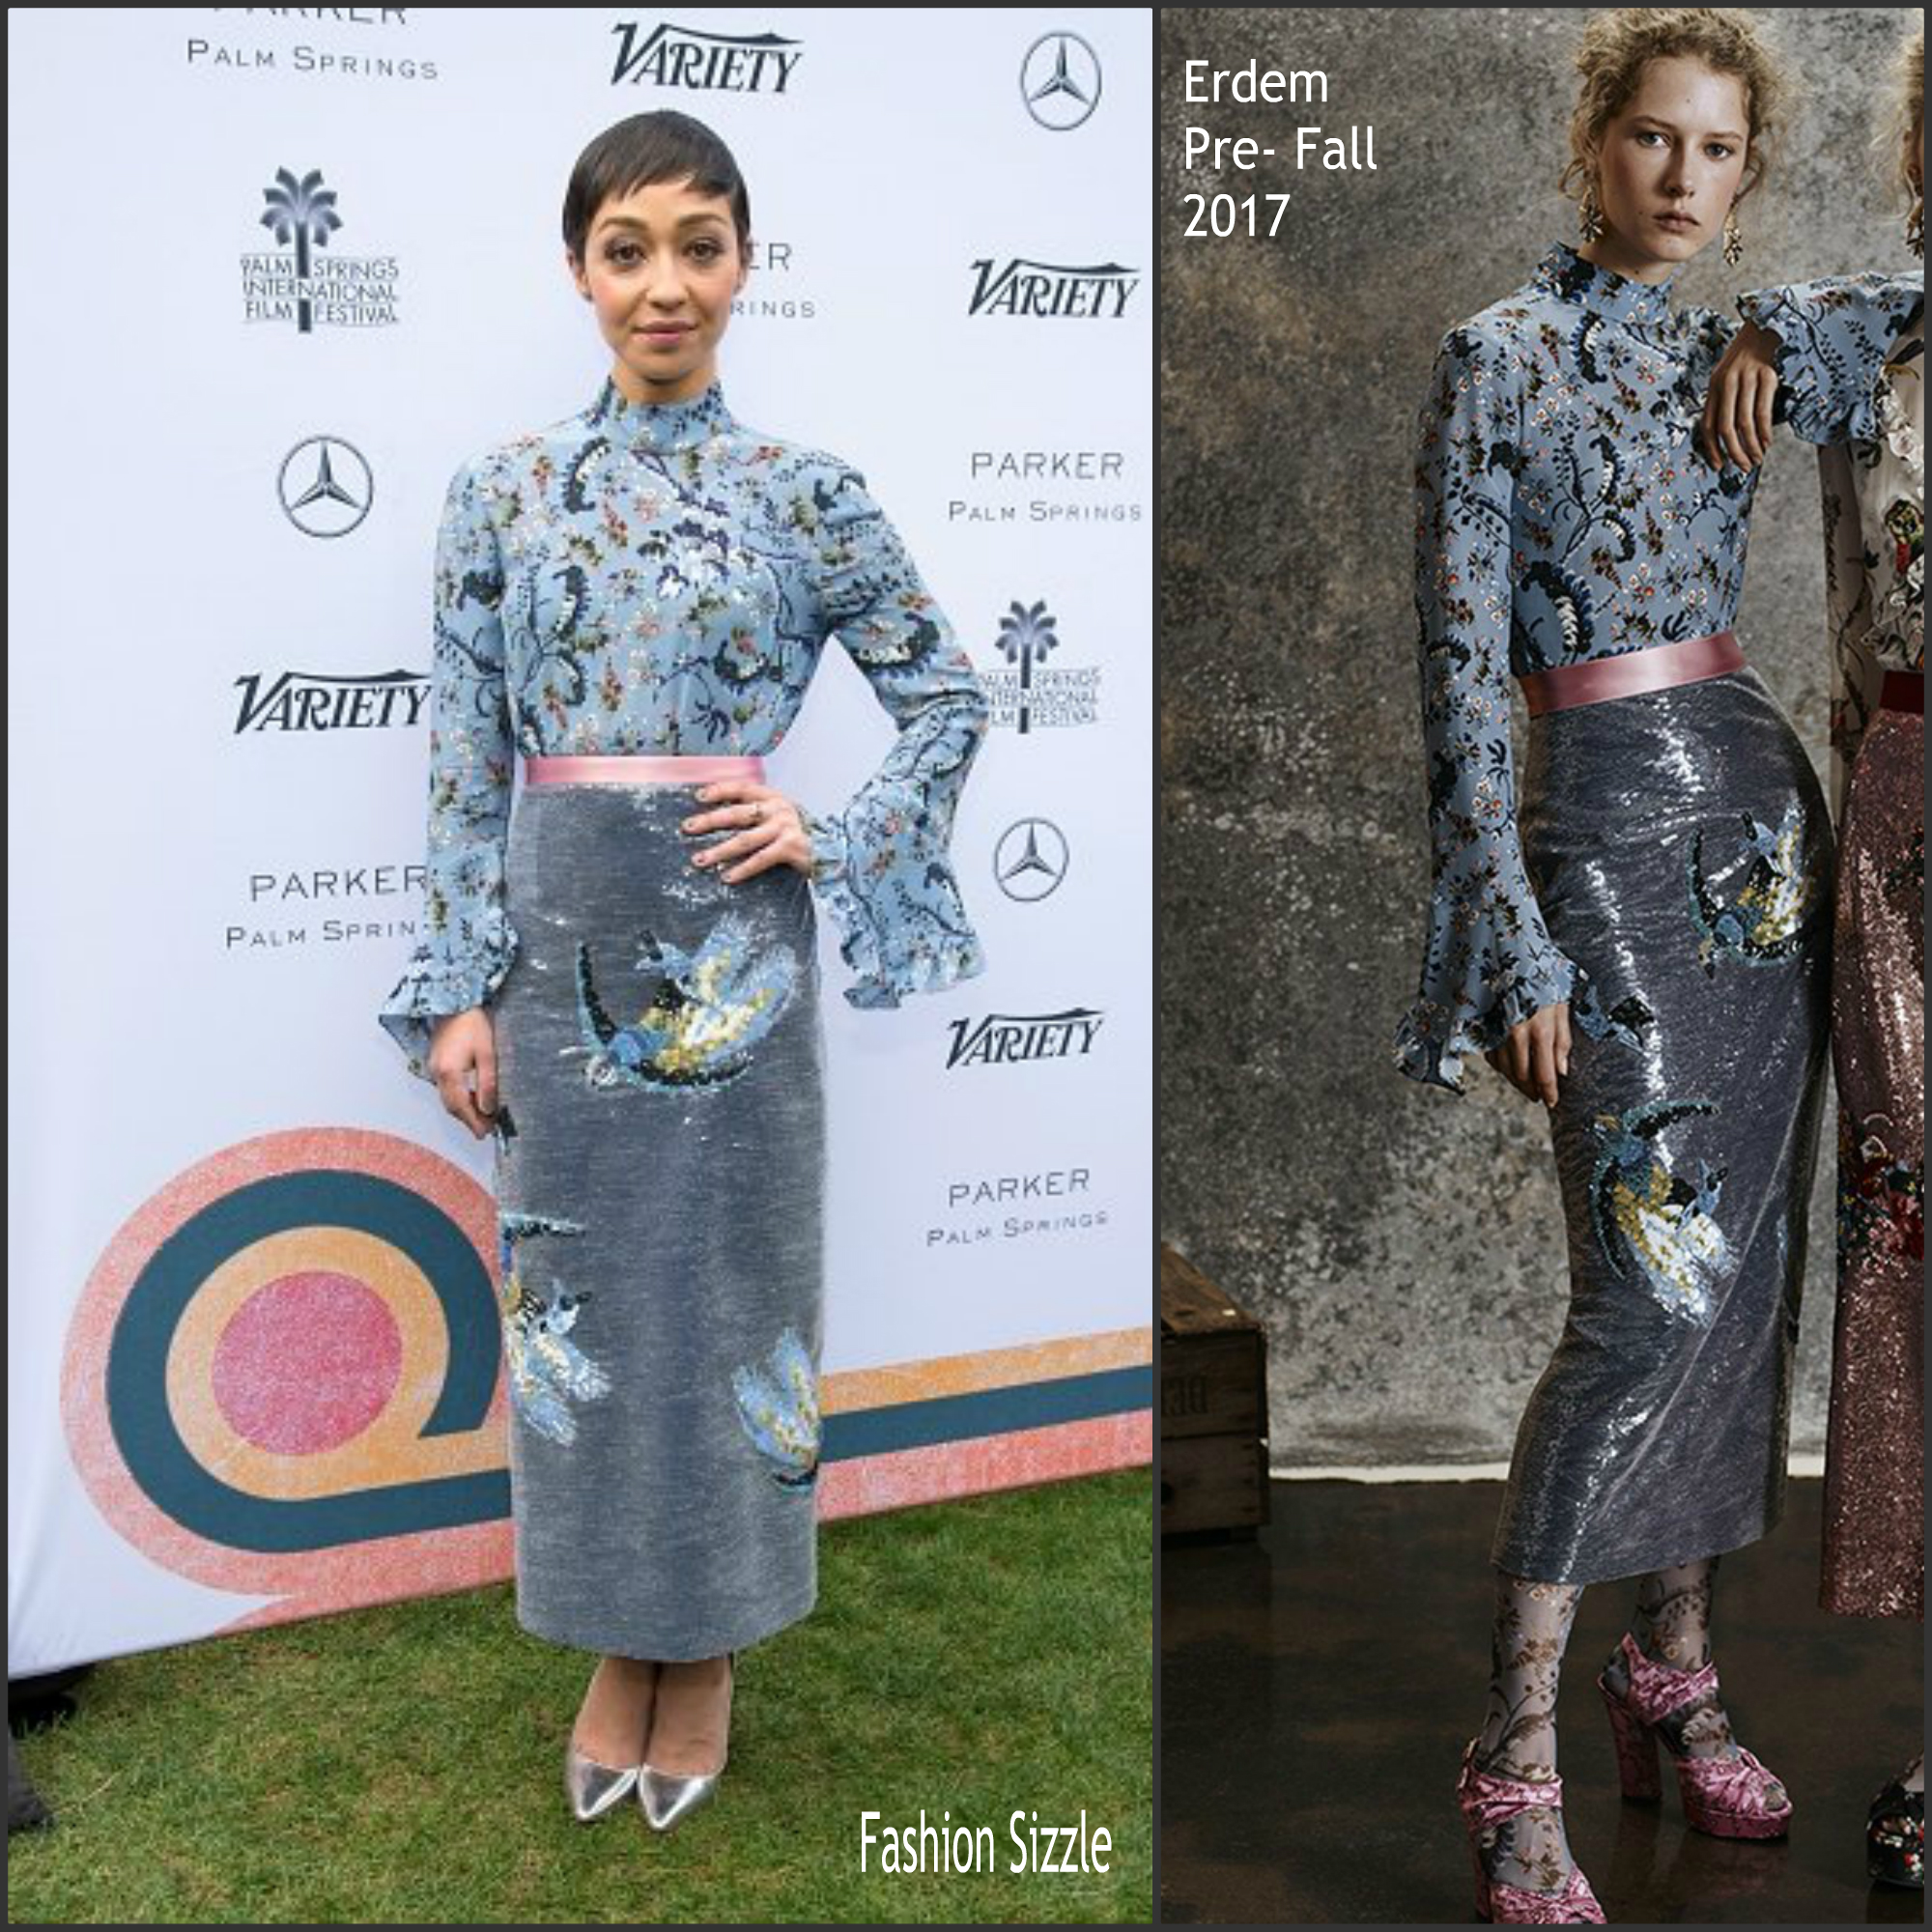 ruth-negga-in-erdem-at-creative-impact-awards-10-directors-to-watch